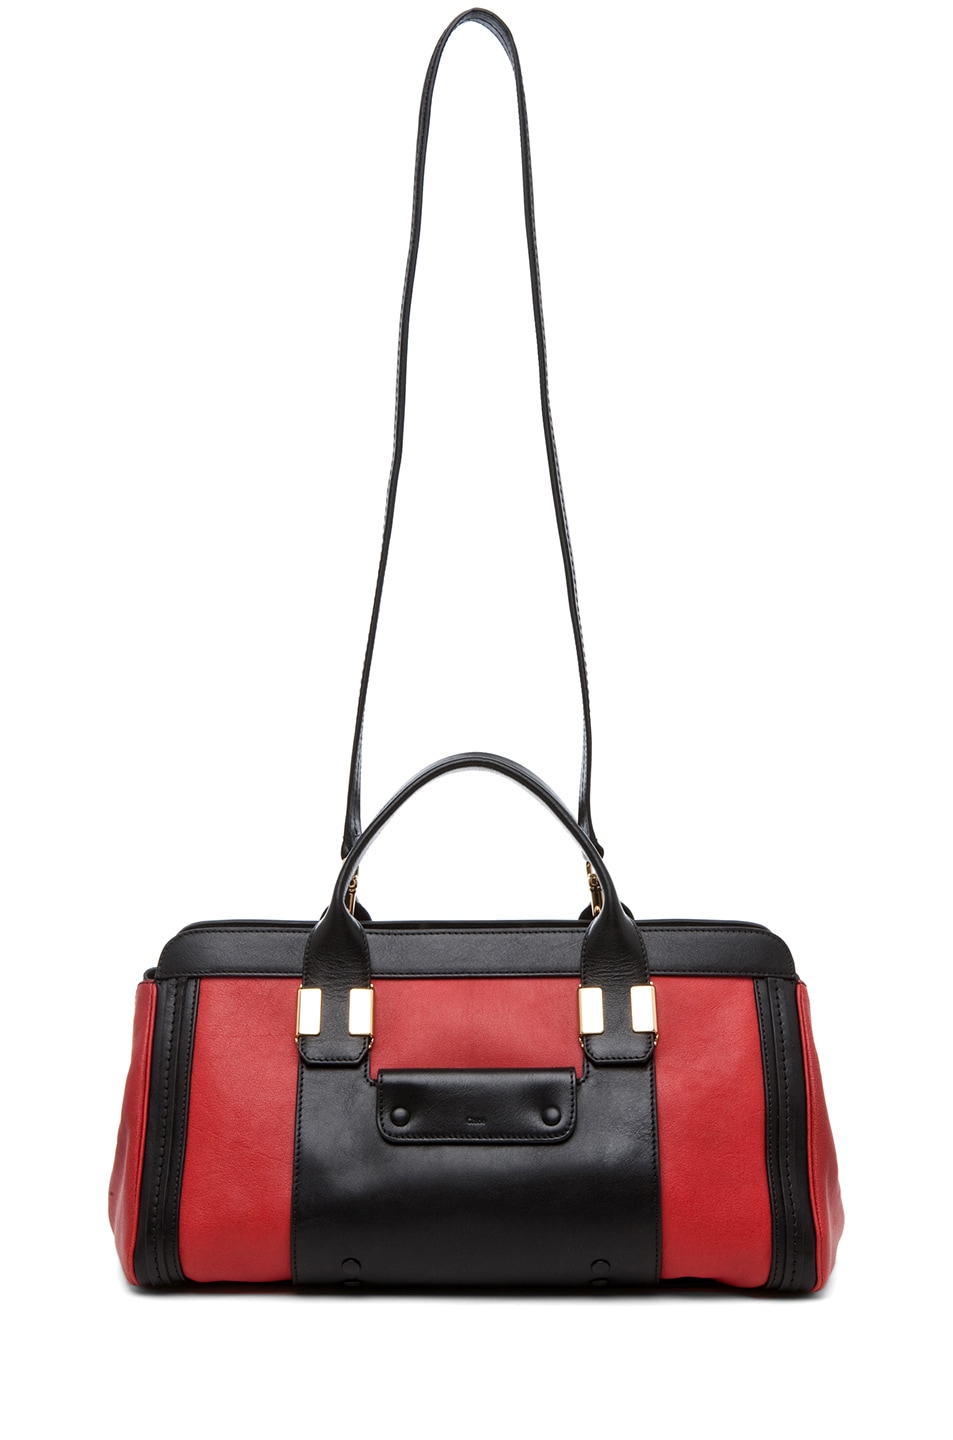 Image 5 of Chloe Alice Springs Medium Handbag in Holly Berry